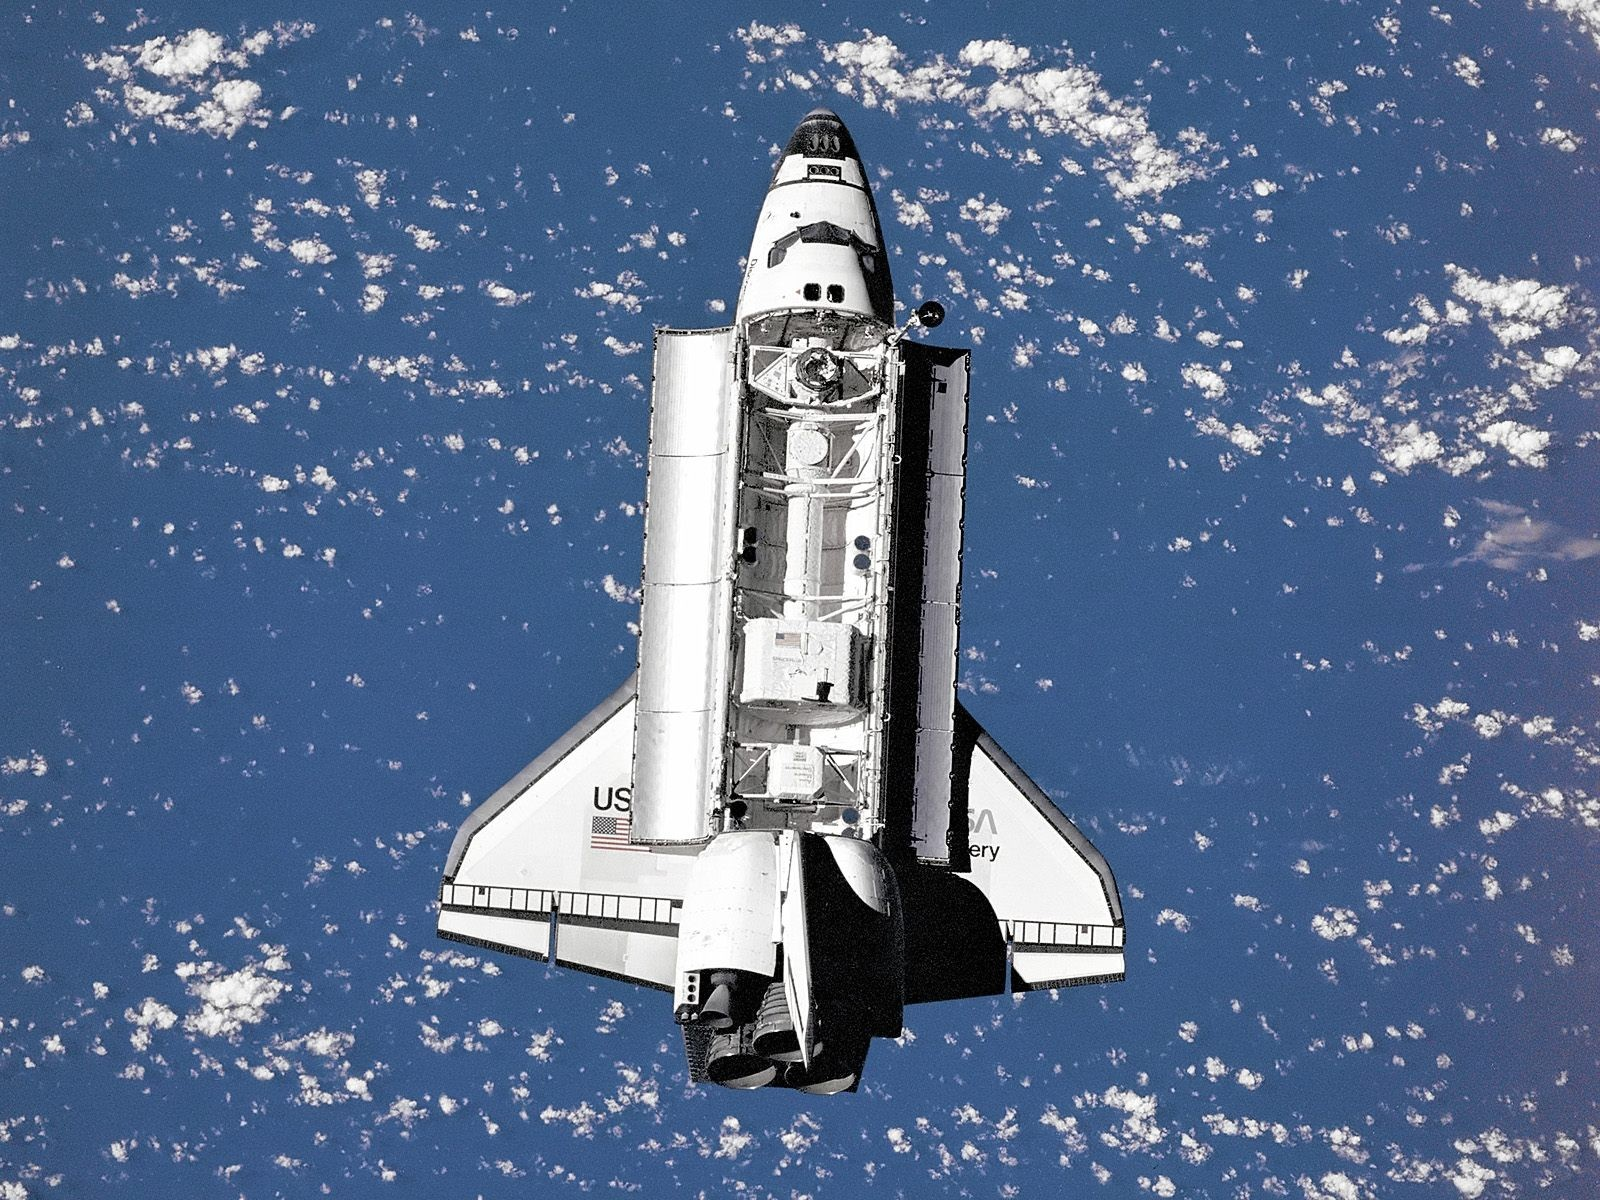 discovery space shuttle - HD1600×1200